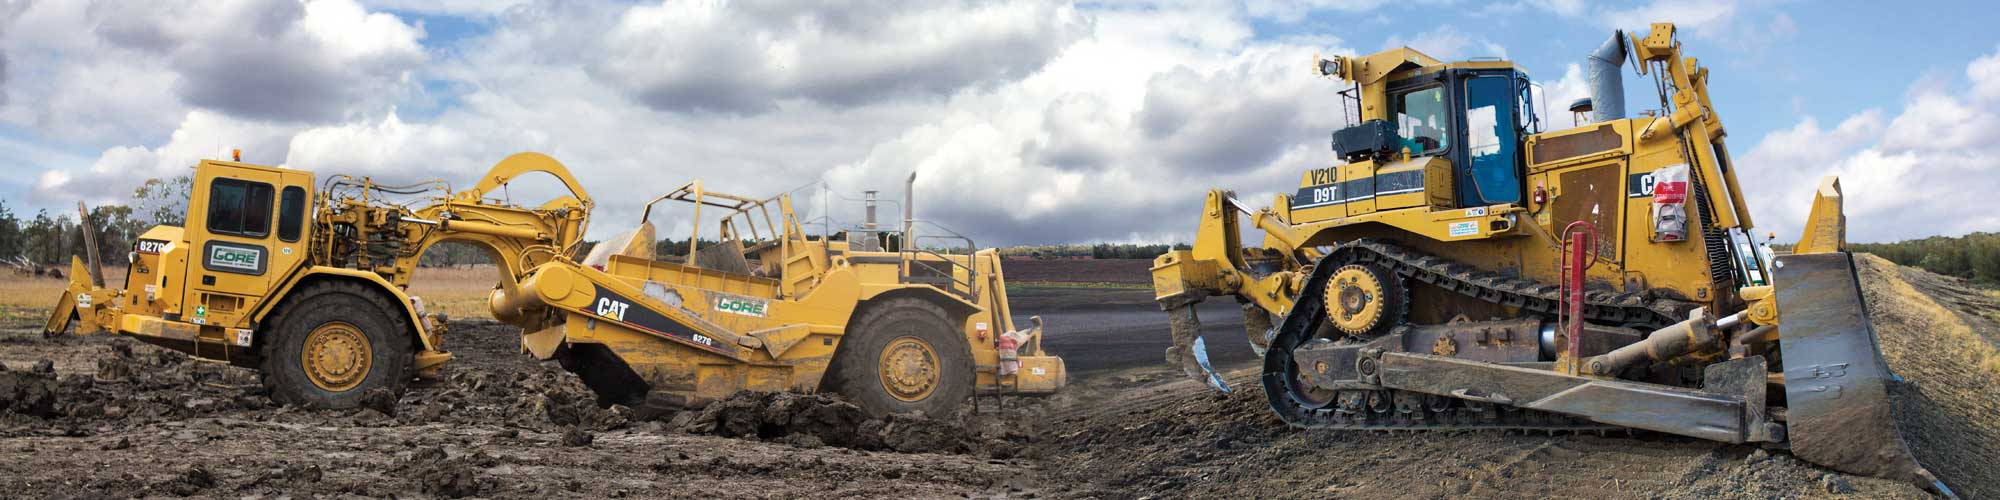 Gore Earthmoving Machines